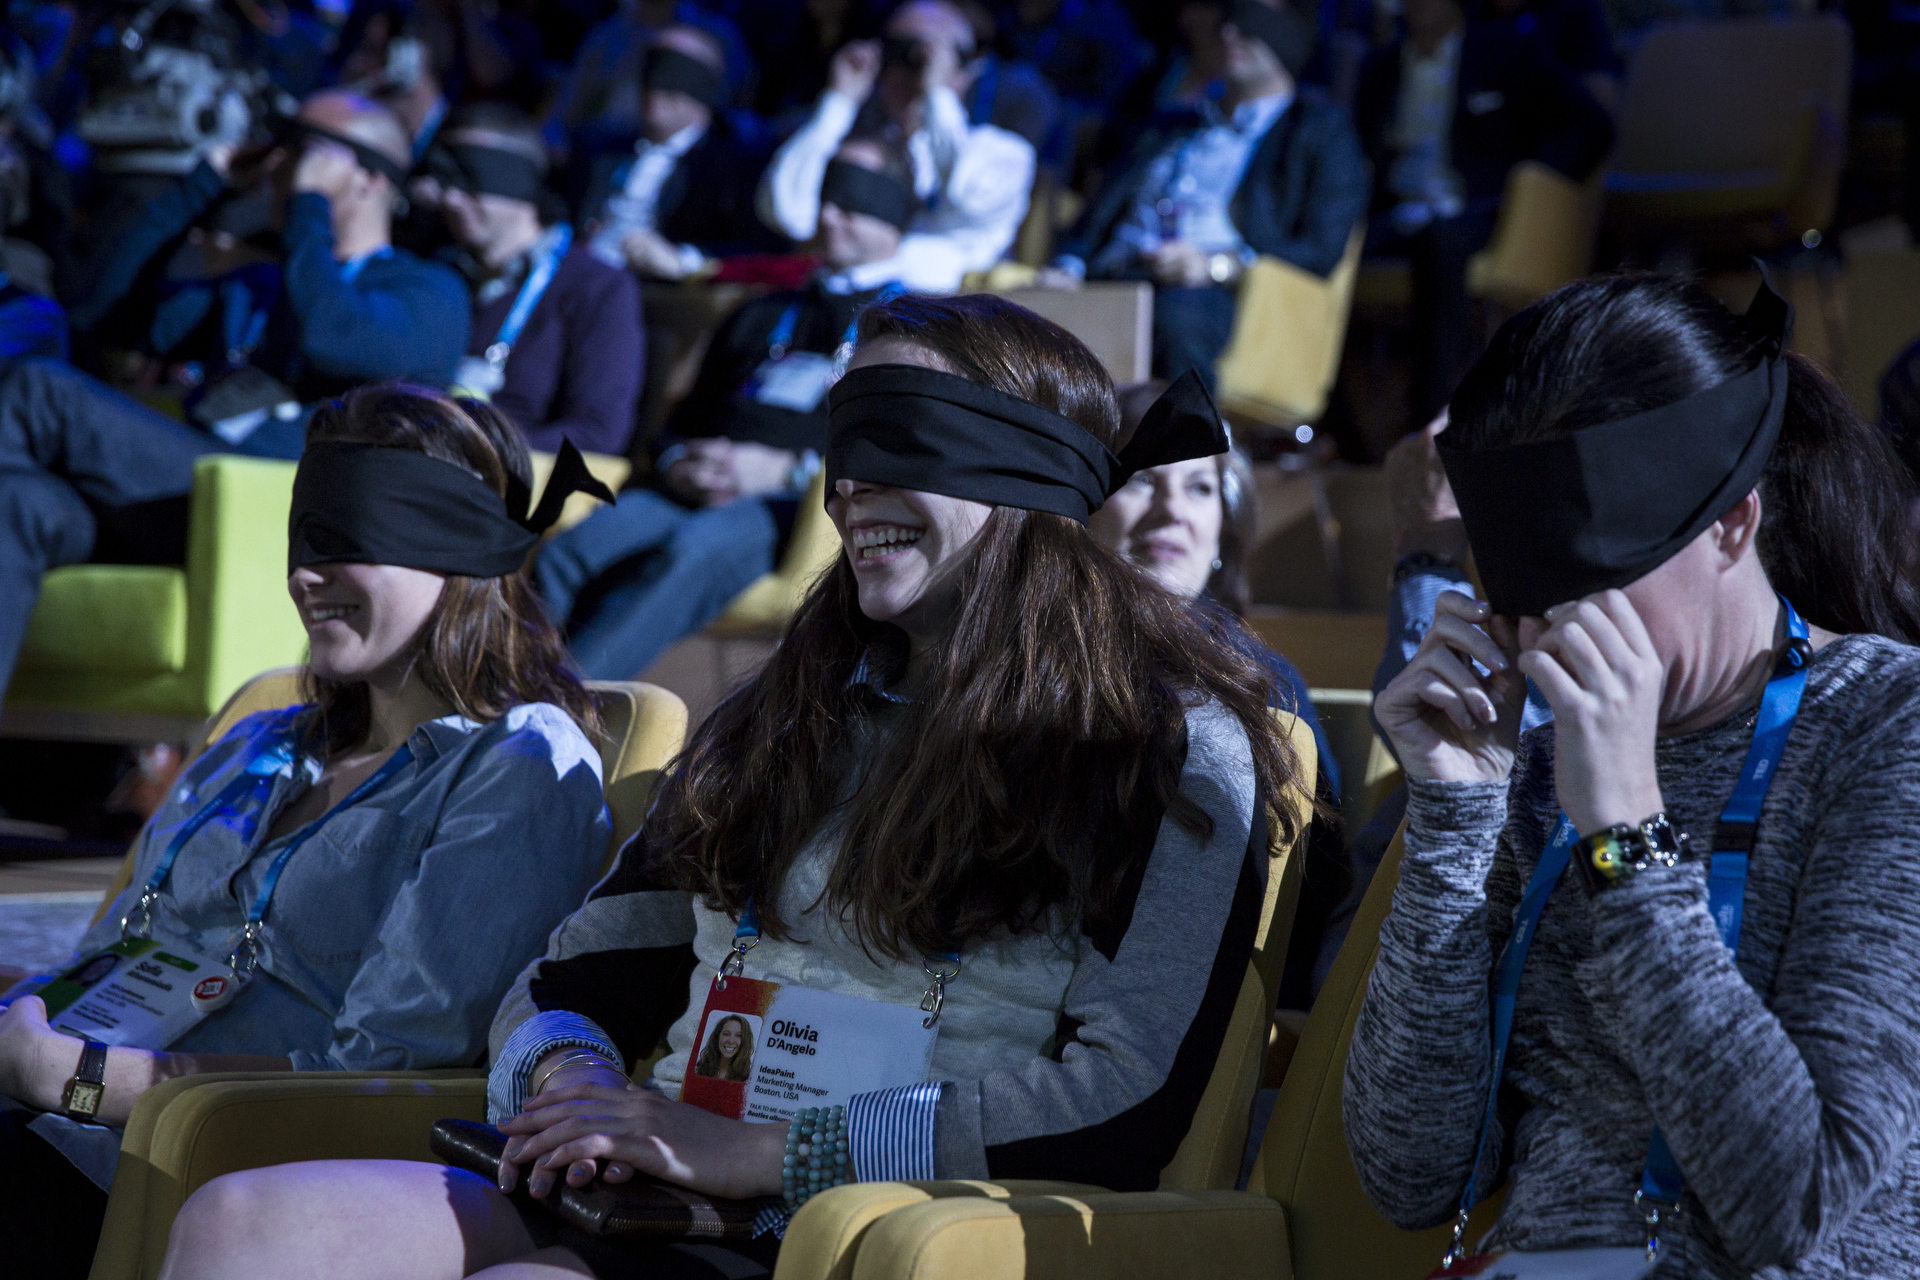 For Marina Abramović's TED Talk, she had the audience wear blindfolds for a full five minutes. Photo: Bret Hartman/TED